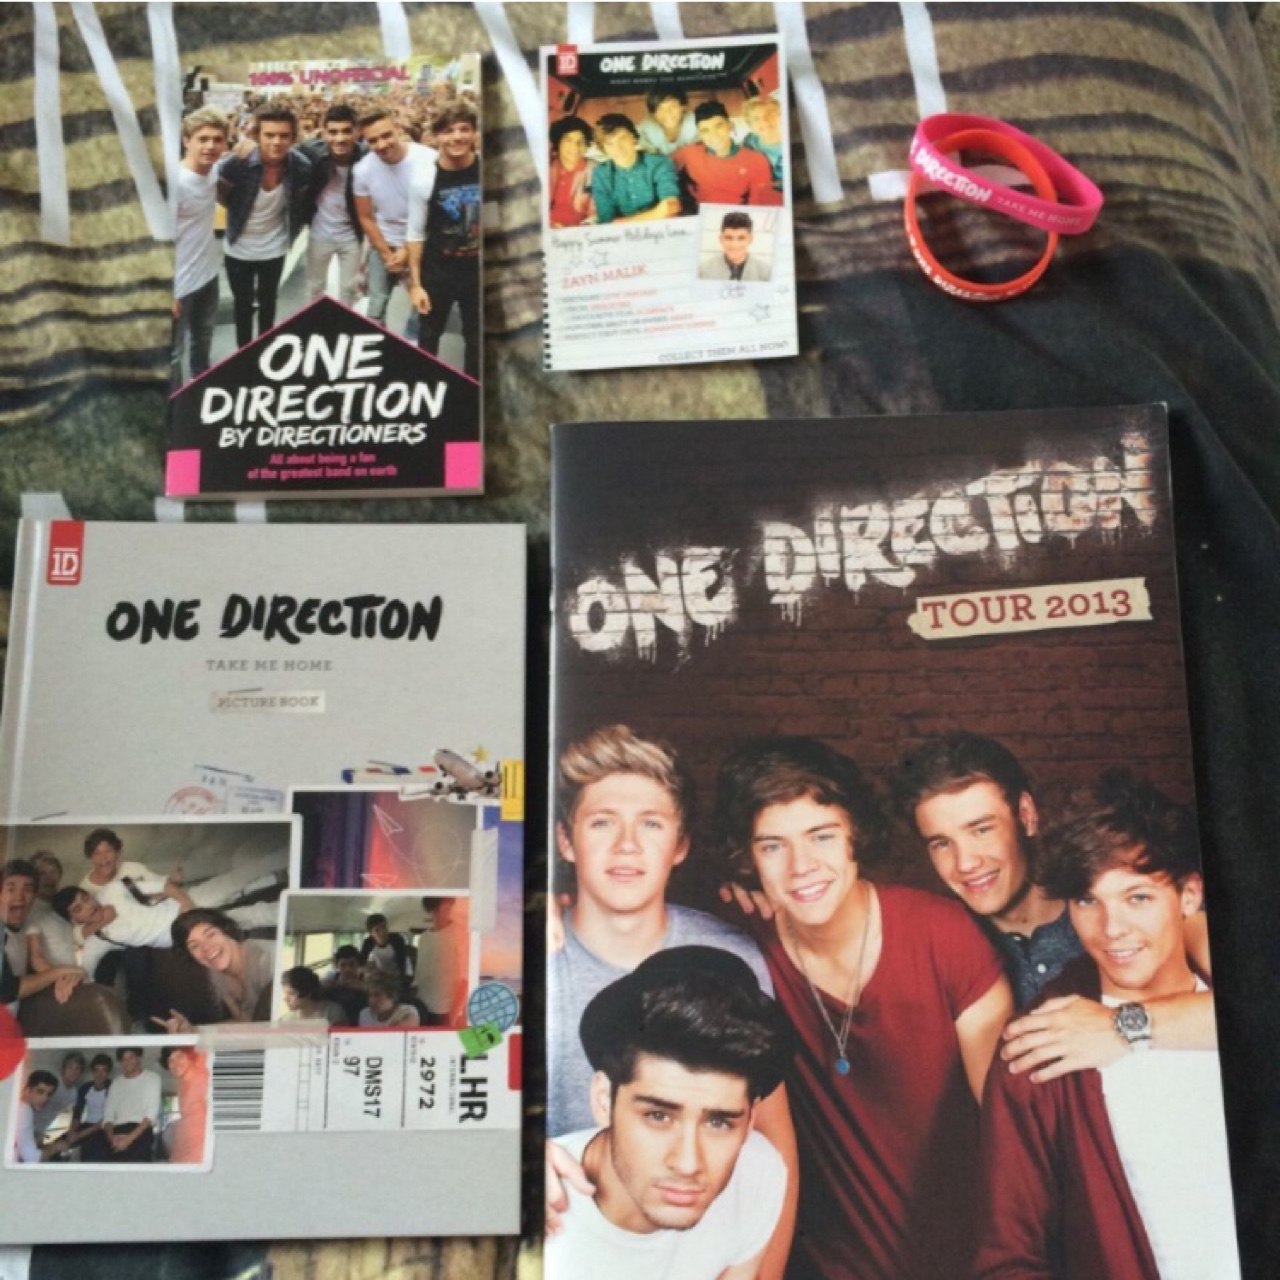 One Direction Take Me Home Limited Edition Box Set    - Depop